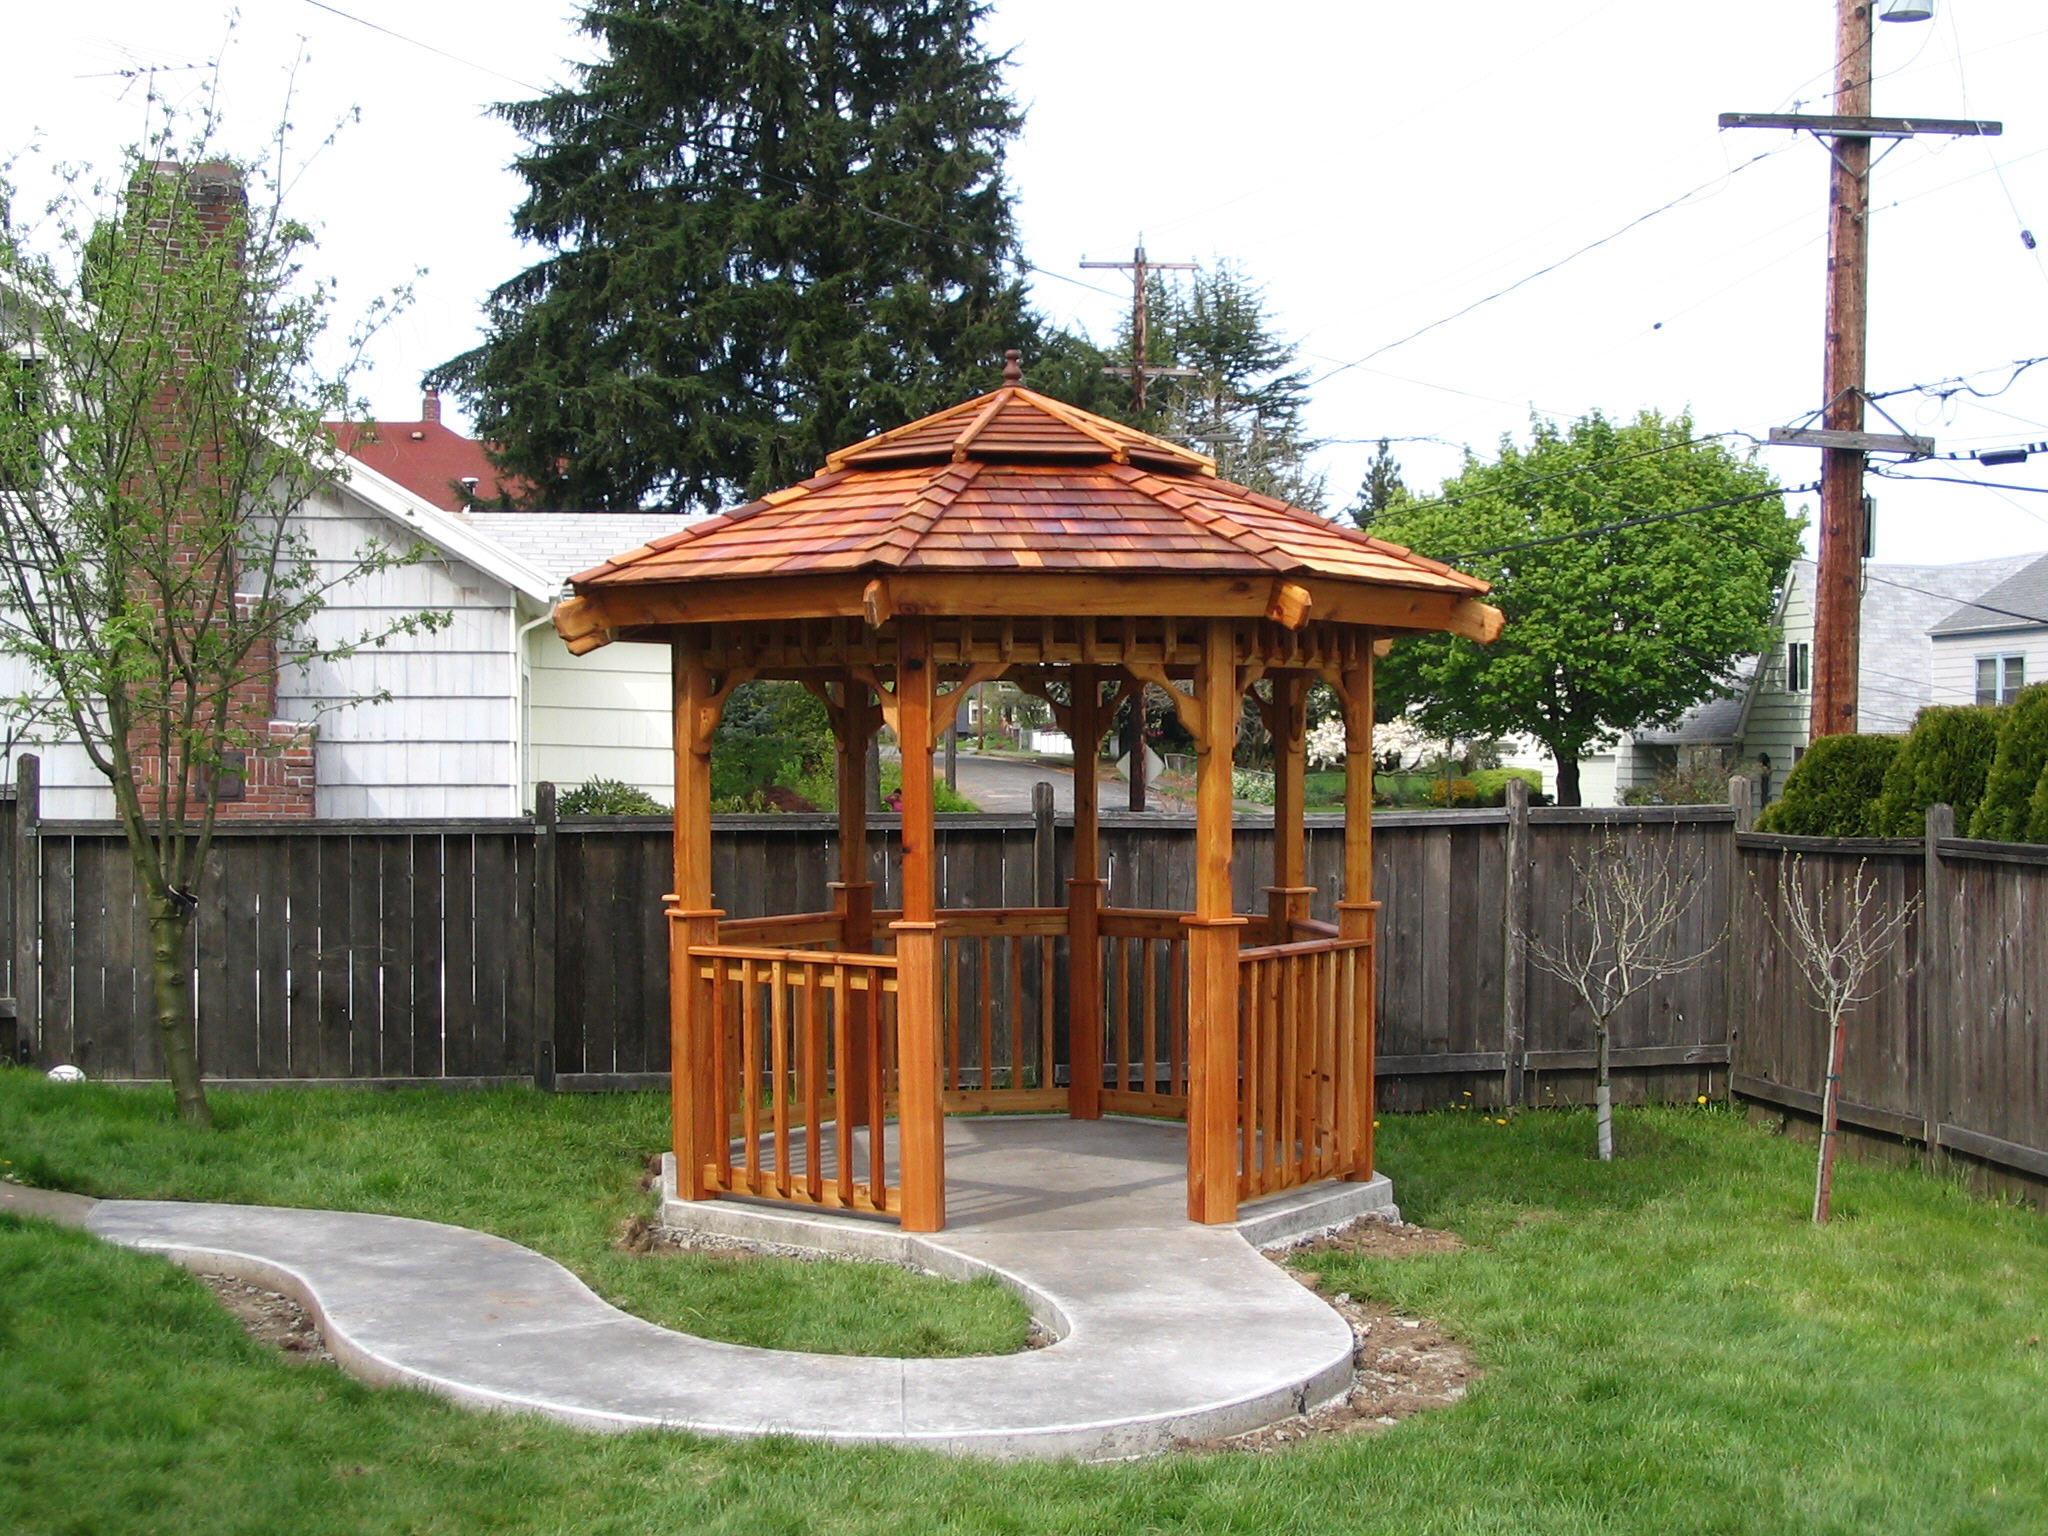 7 Backyard Gazebo Ideas For Sun Shade And Rain Shelter within 12 Genius Ways How to Make Backyard Gazebo Ideas